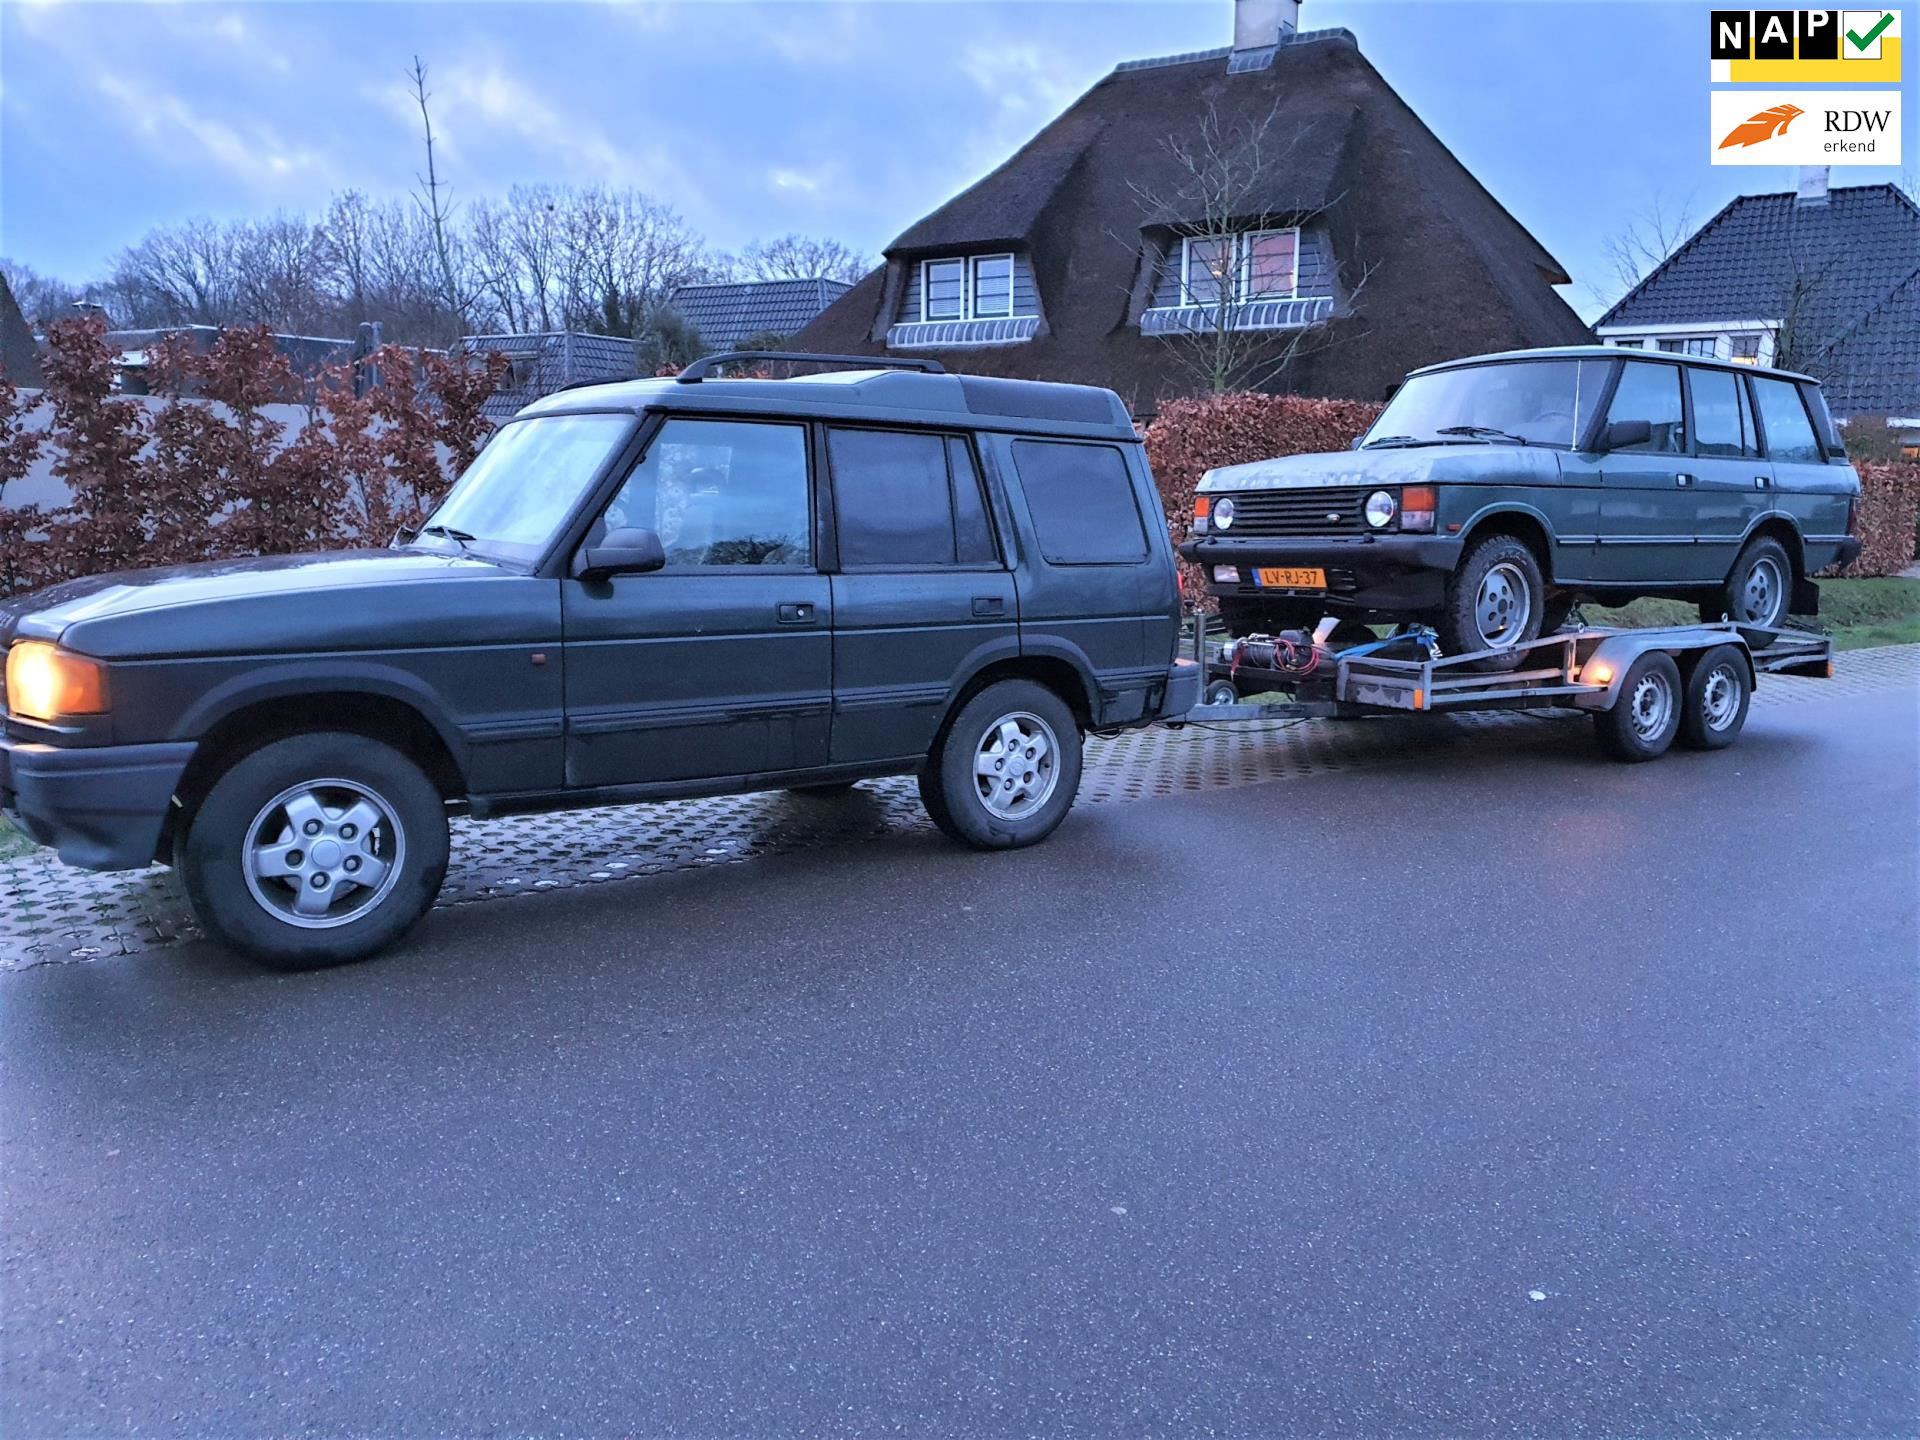 Land Rover Range Rover occasion - Bronkhorst Banden & Autoservice